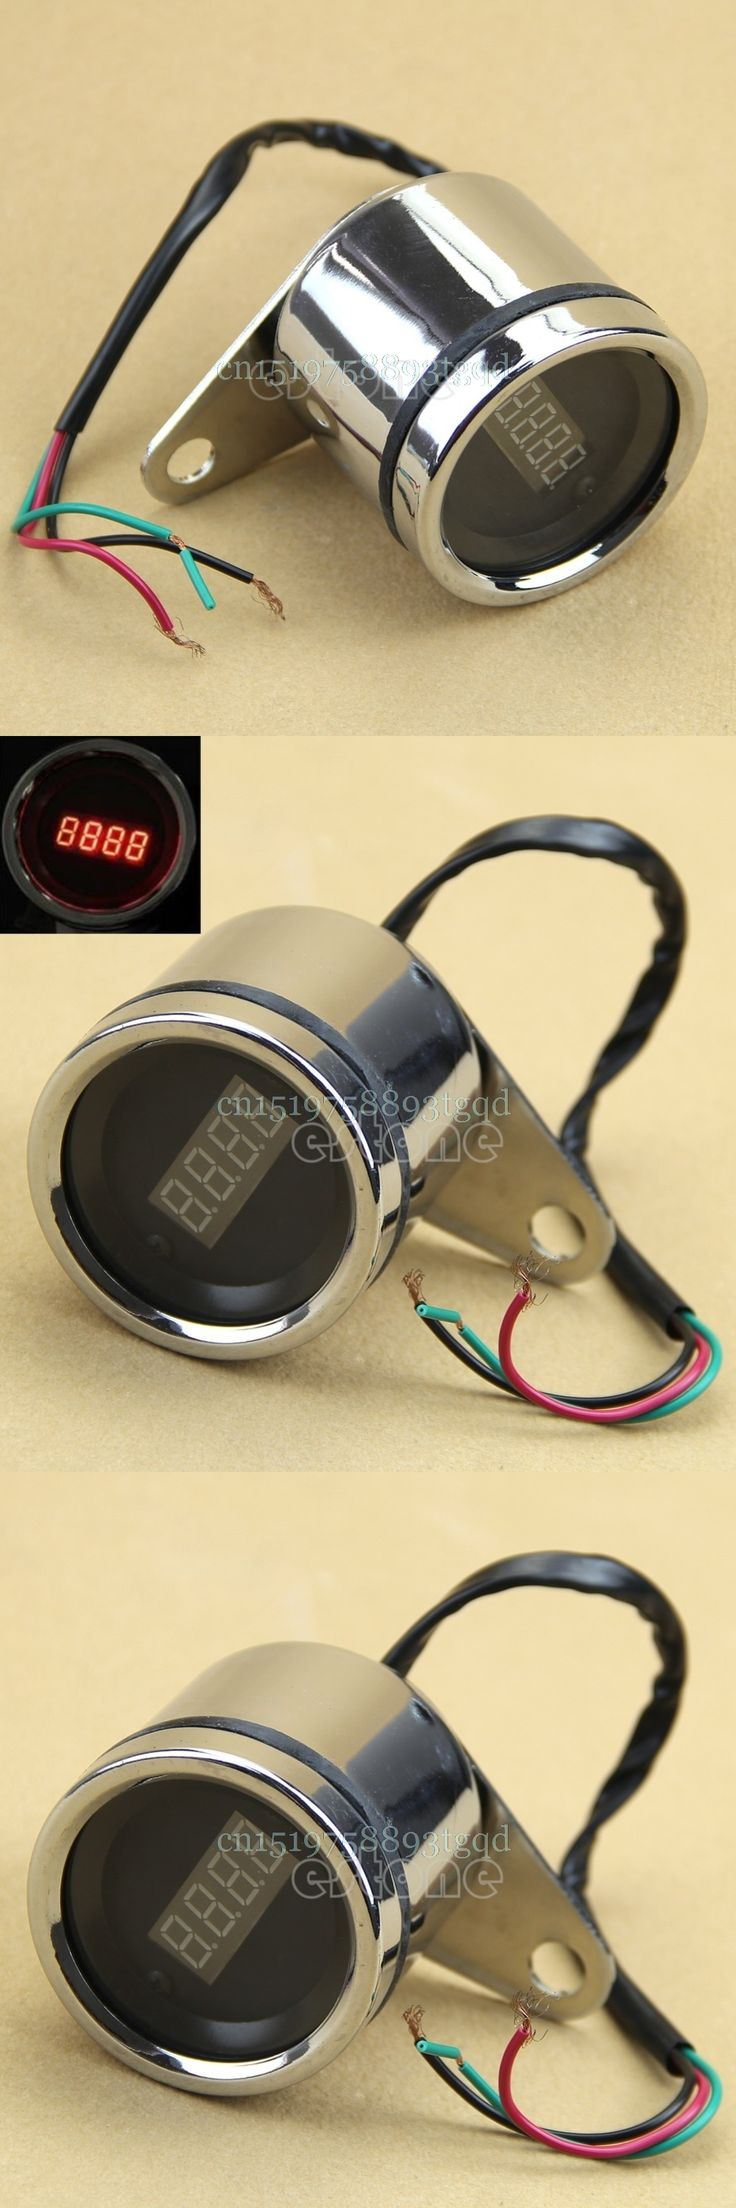 Waterproof Motorcycle Red LED Light Digital Tachometer Tacho Speedometer Gauge#T518#